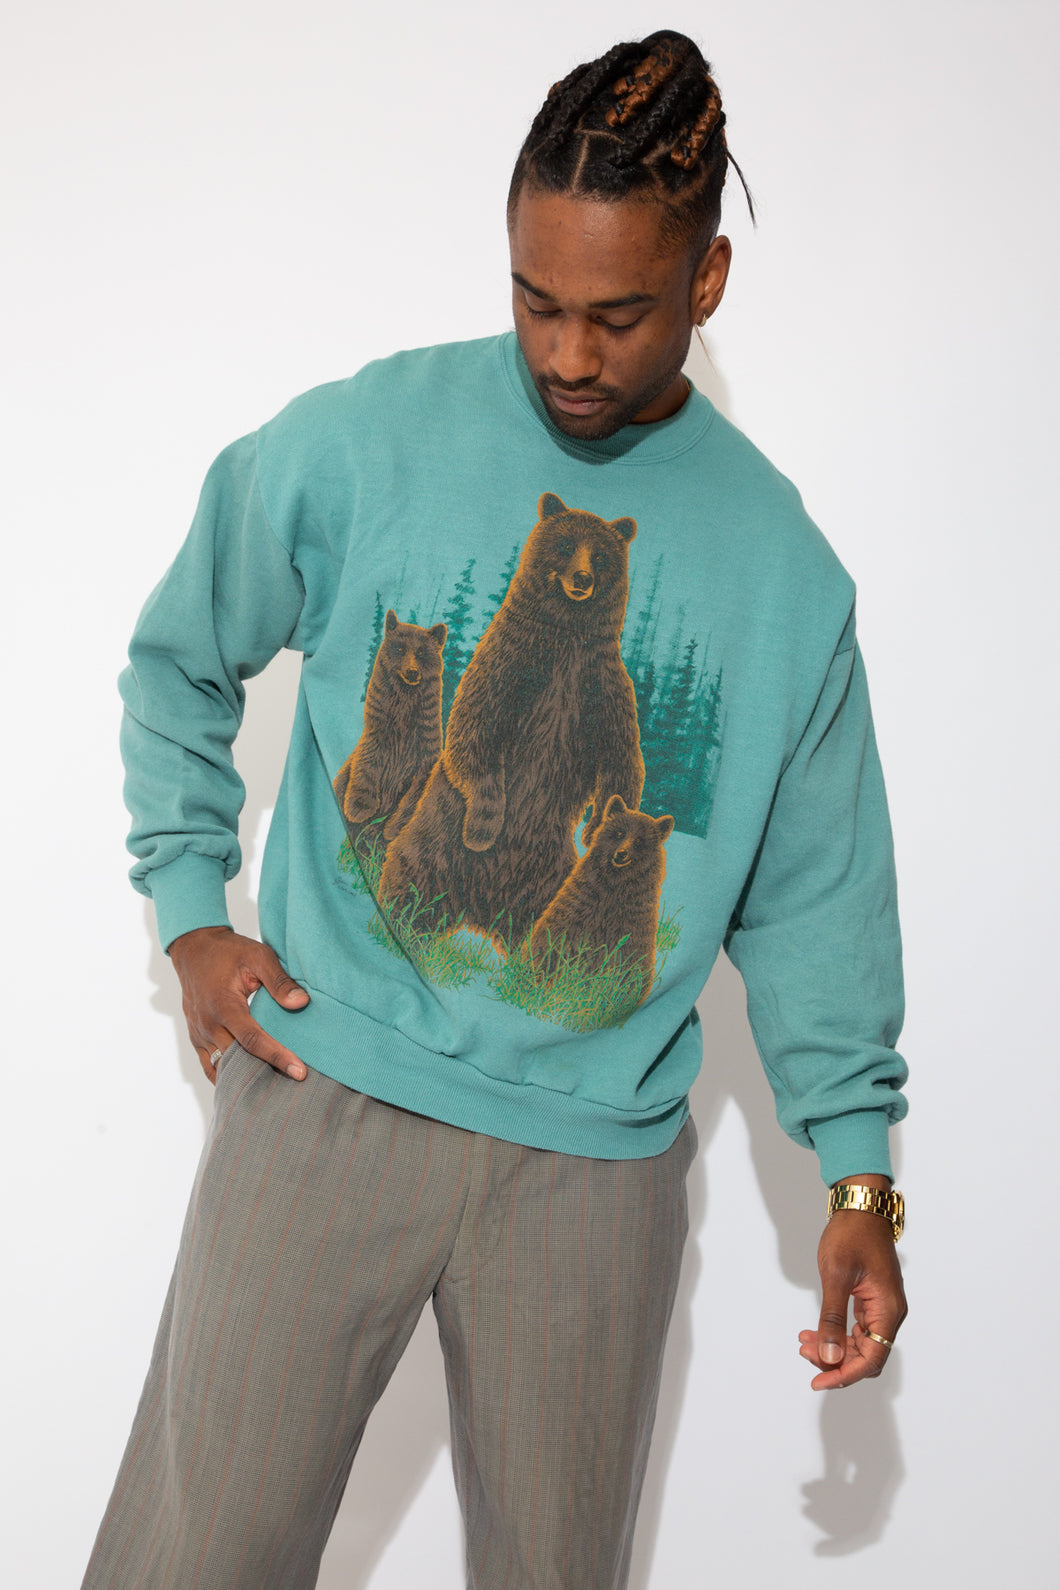 soft teal sweater in boxy fit with bear graphic on front